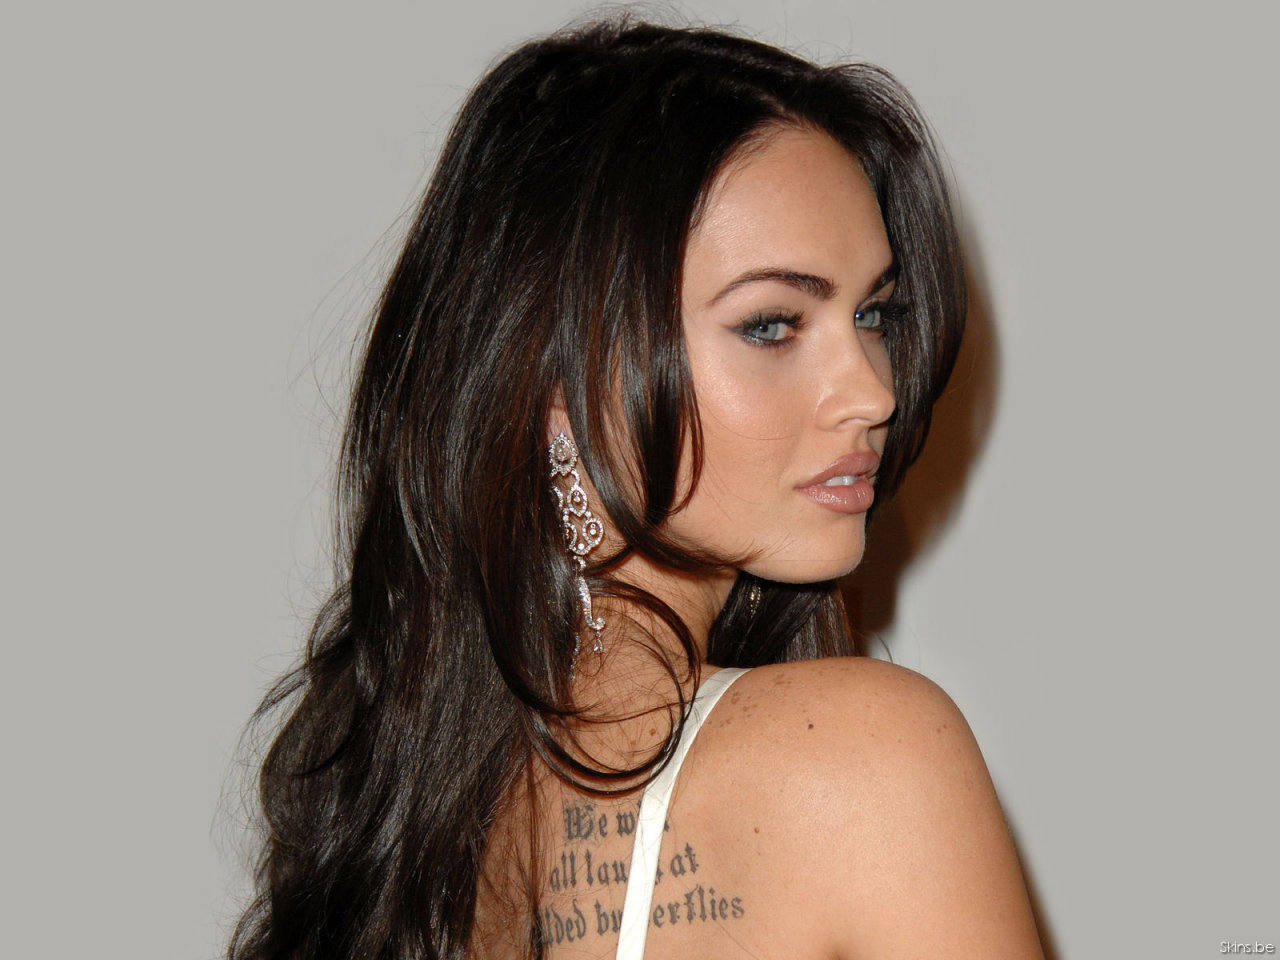 Opinion Megan fox showing off her boobs valuable